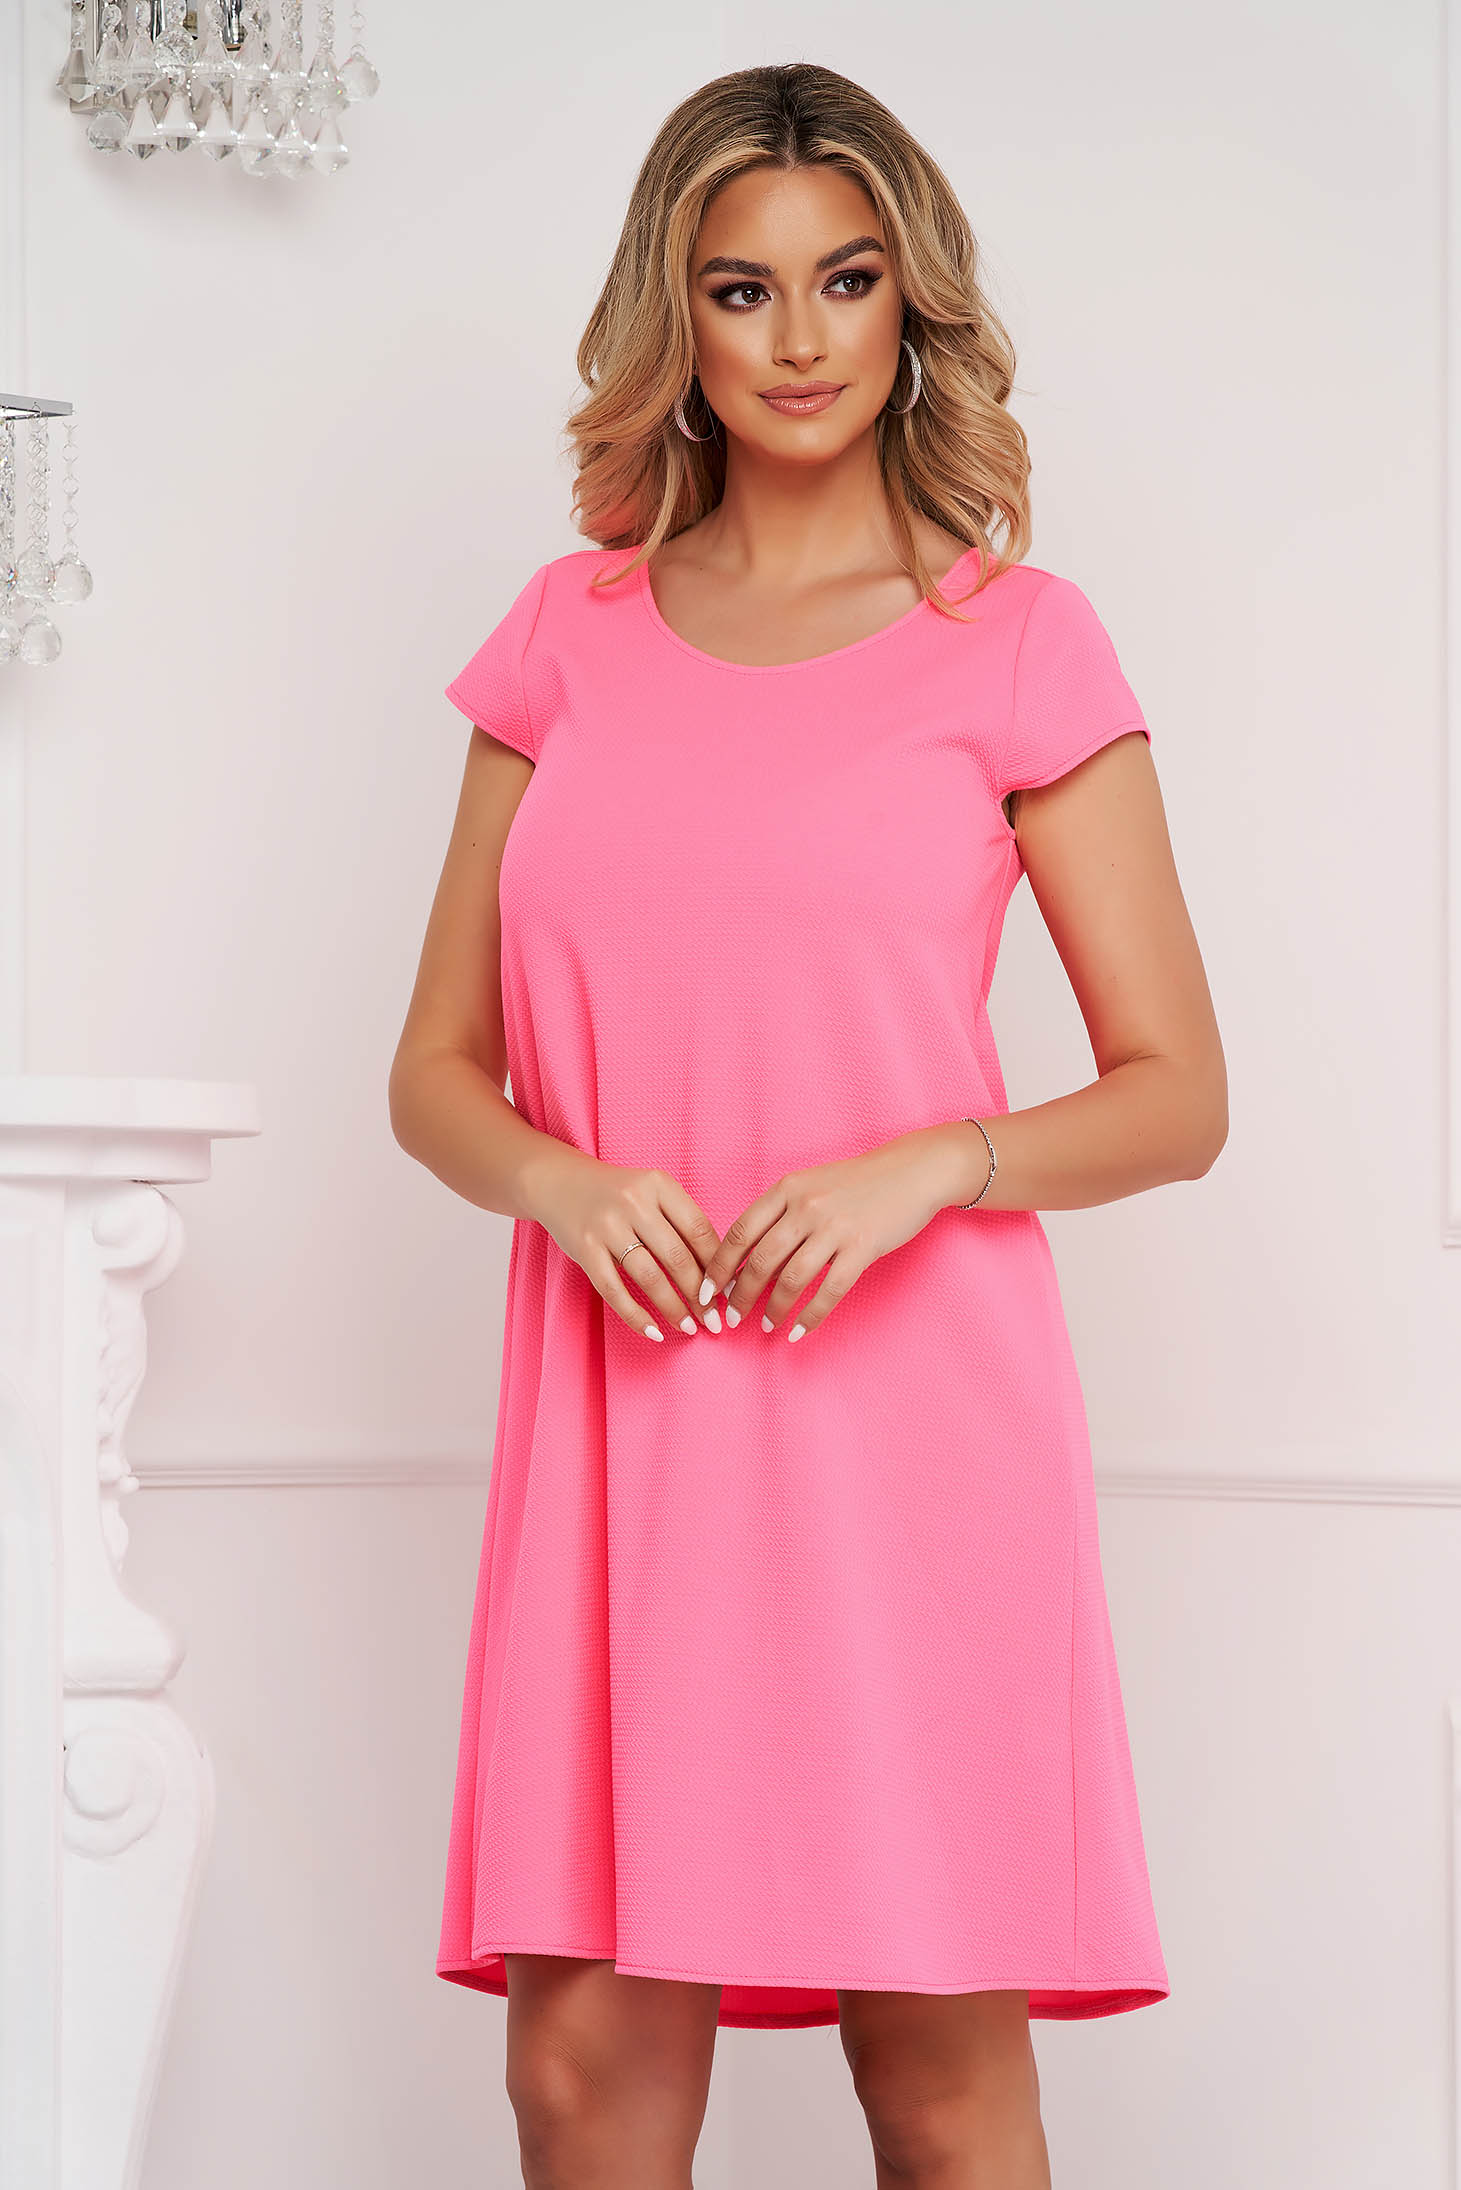 StarShinerS pink dress short cut loose fit wrinkled material with cut back